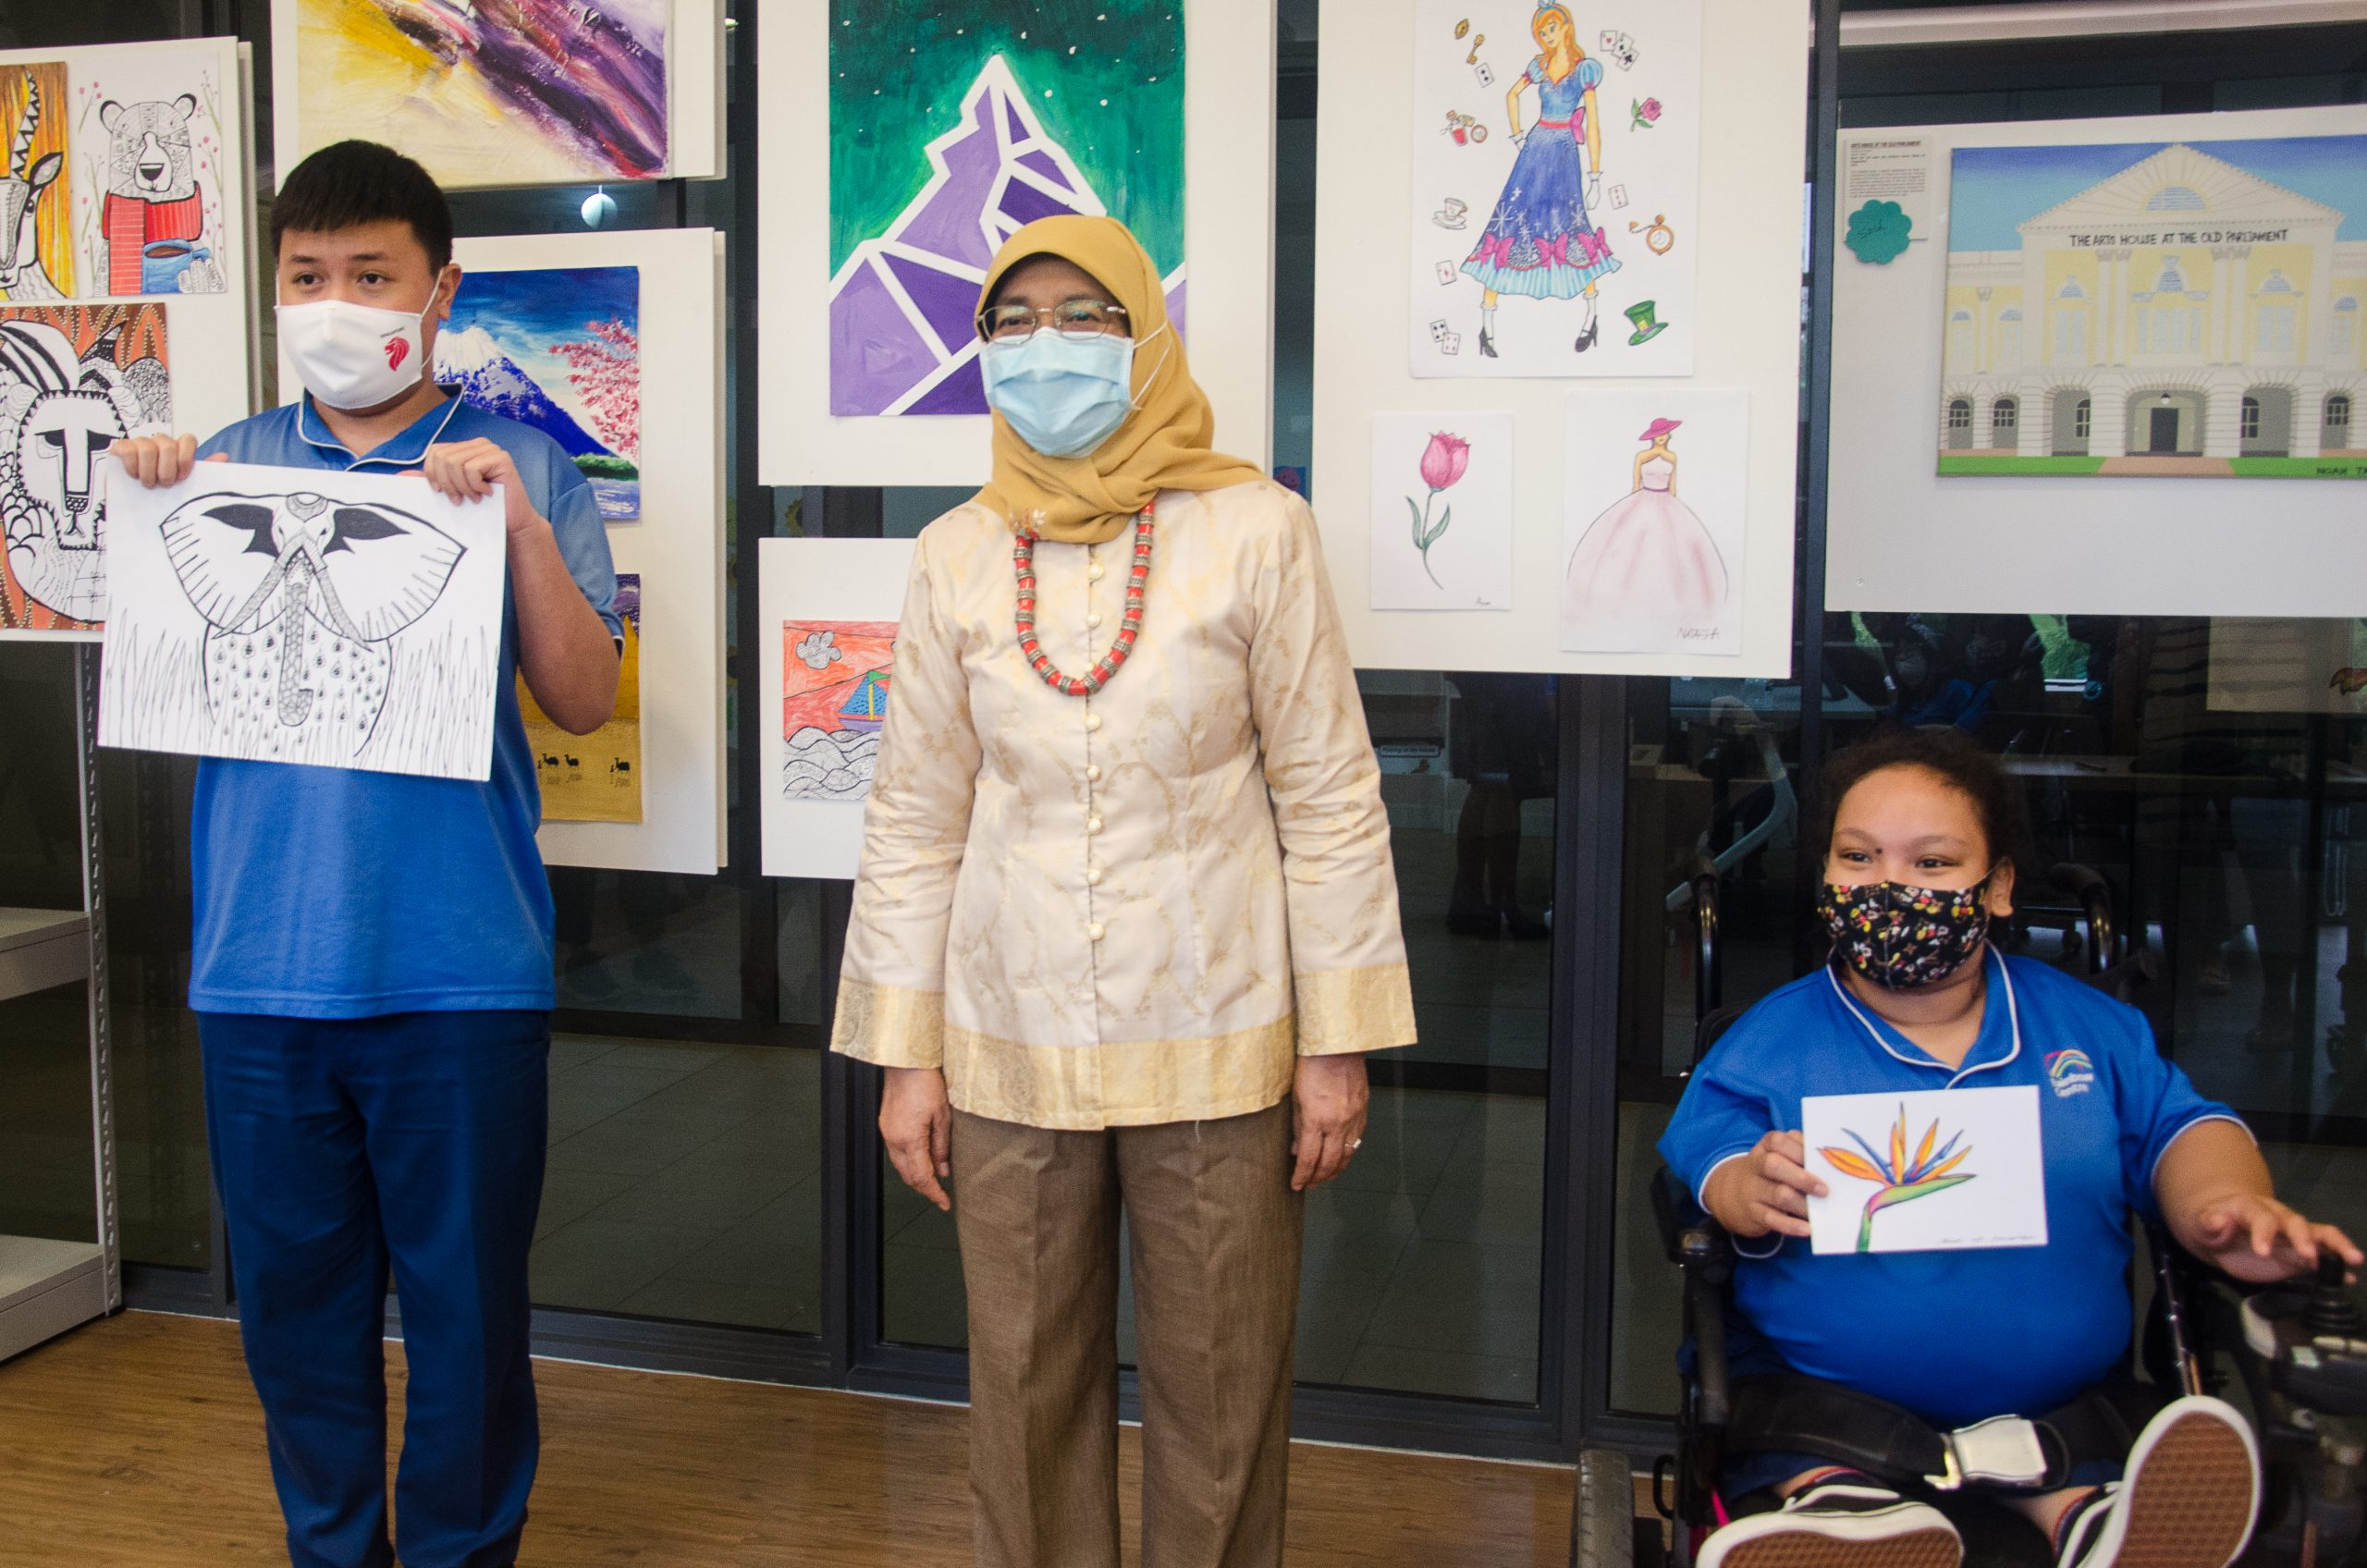 Naufal and Nuralysya pose with President Halimah Yacob during her visit to our Margaret Drive campus.